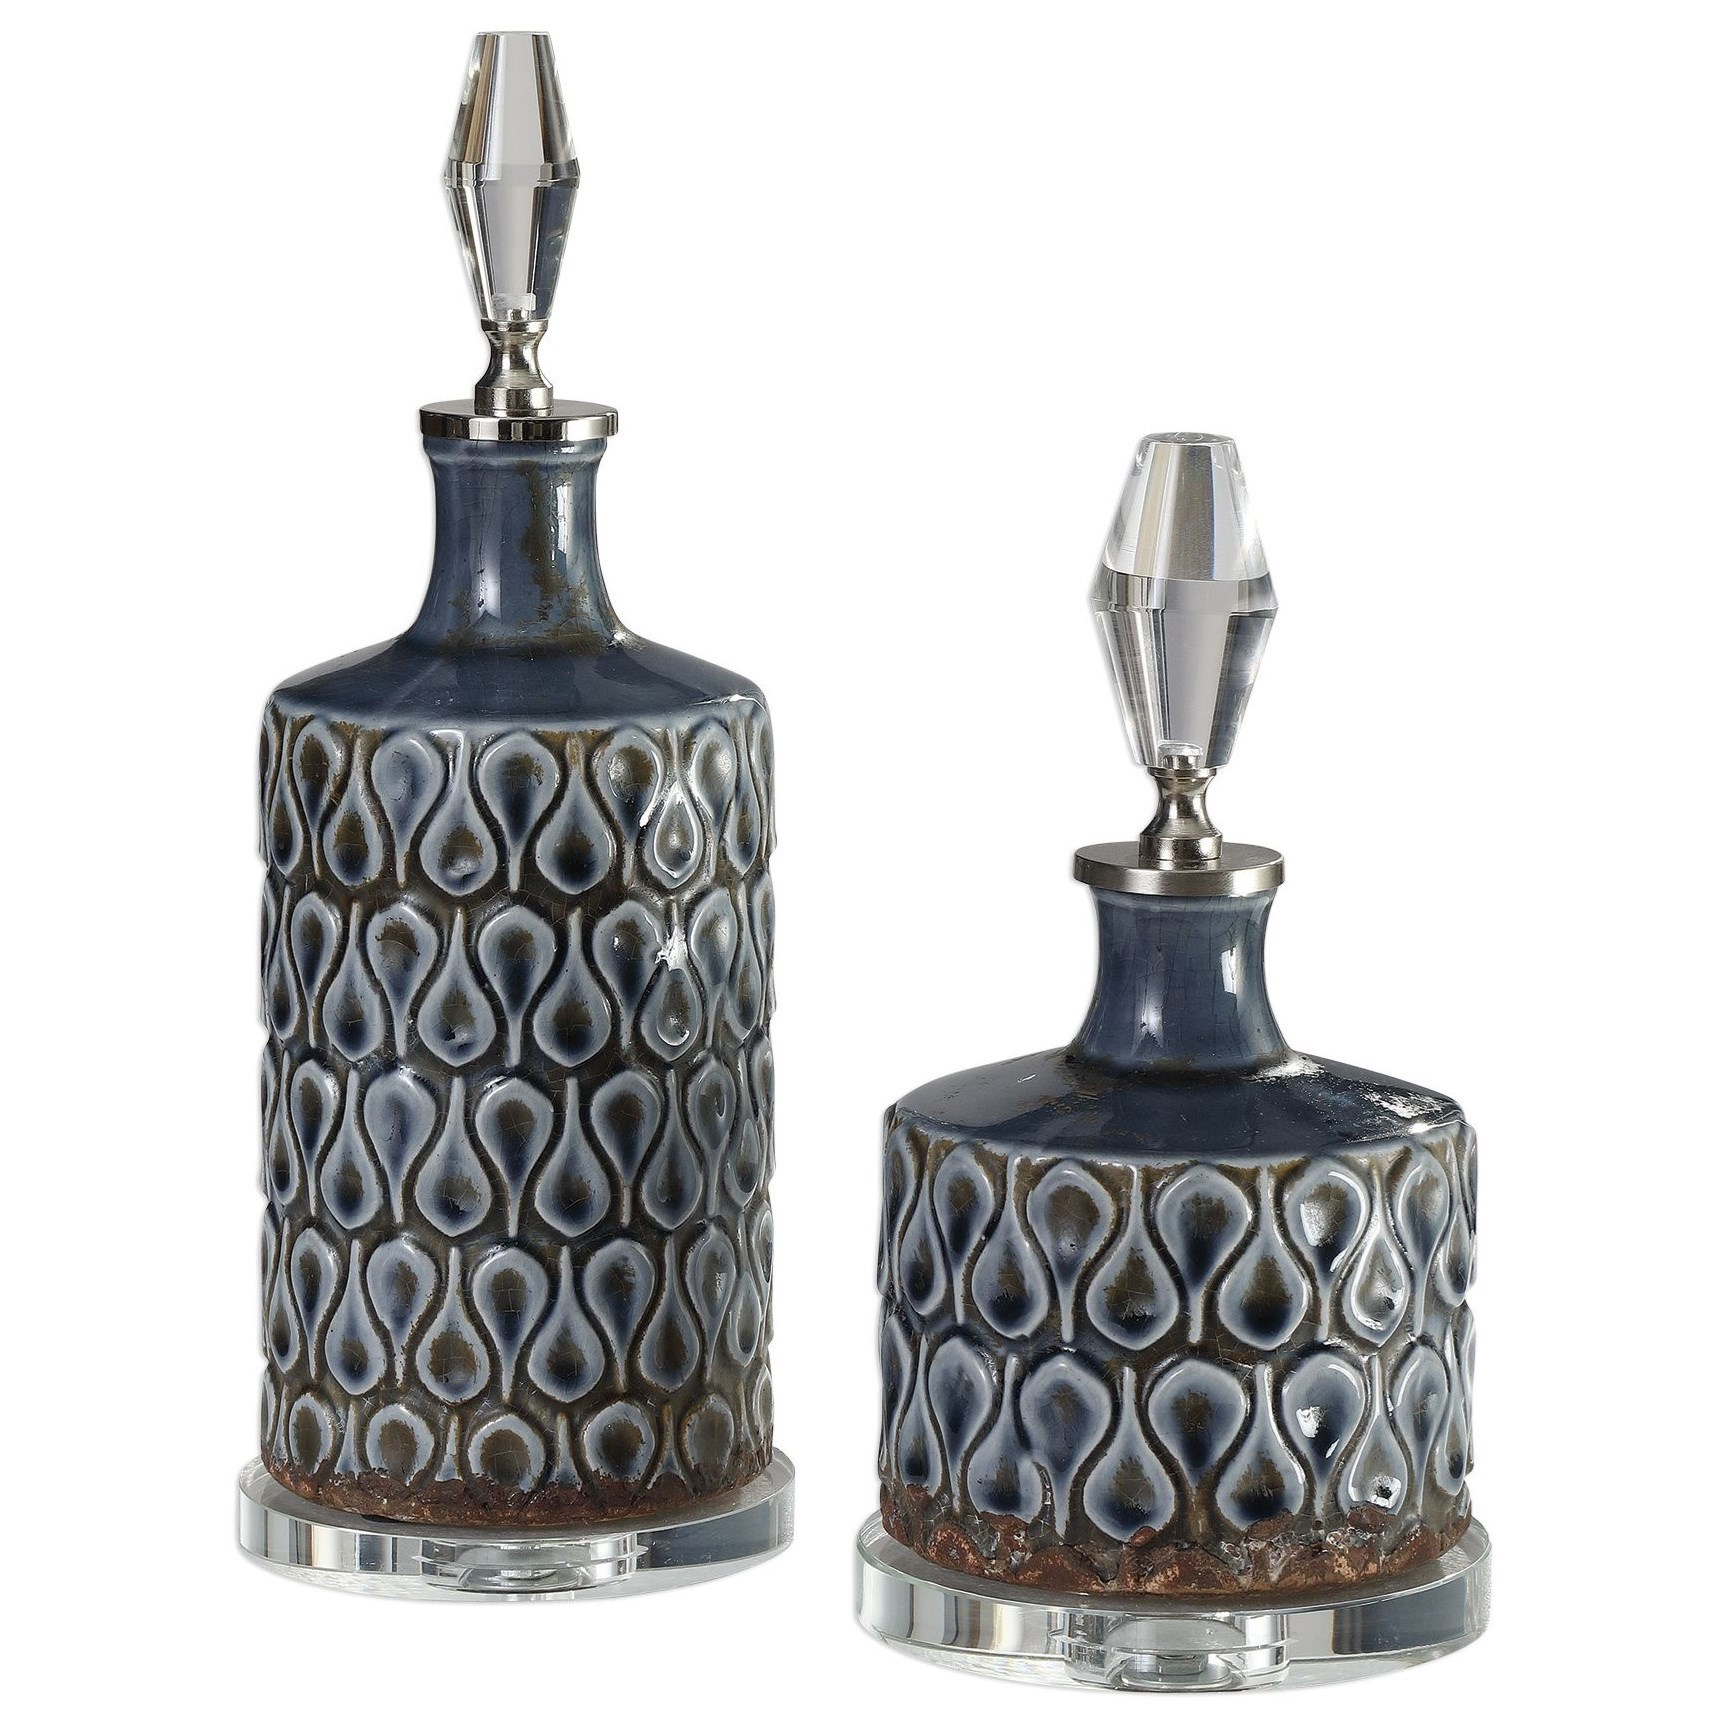 Accessories Varuna Cobalt Blue Bottles S/2 by Uttermost at Upper Room Home Furnishings